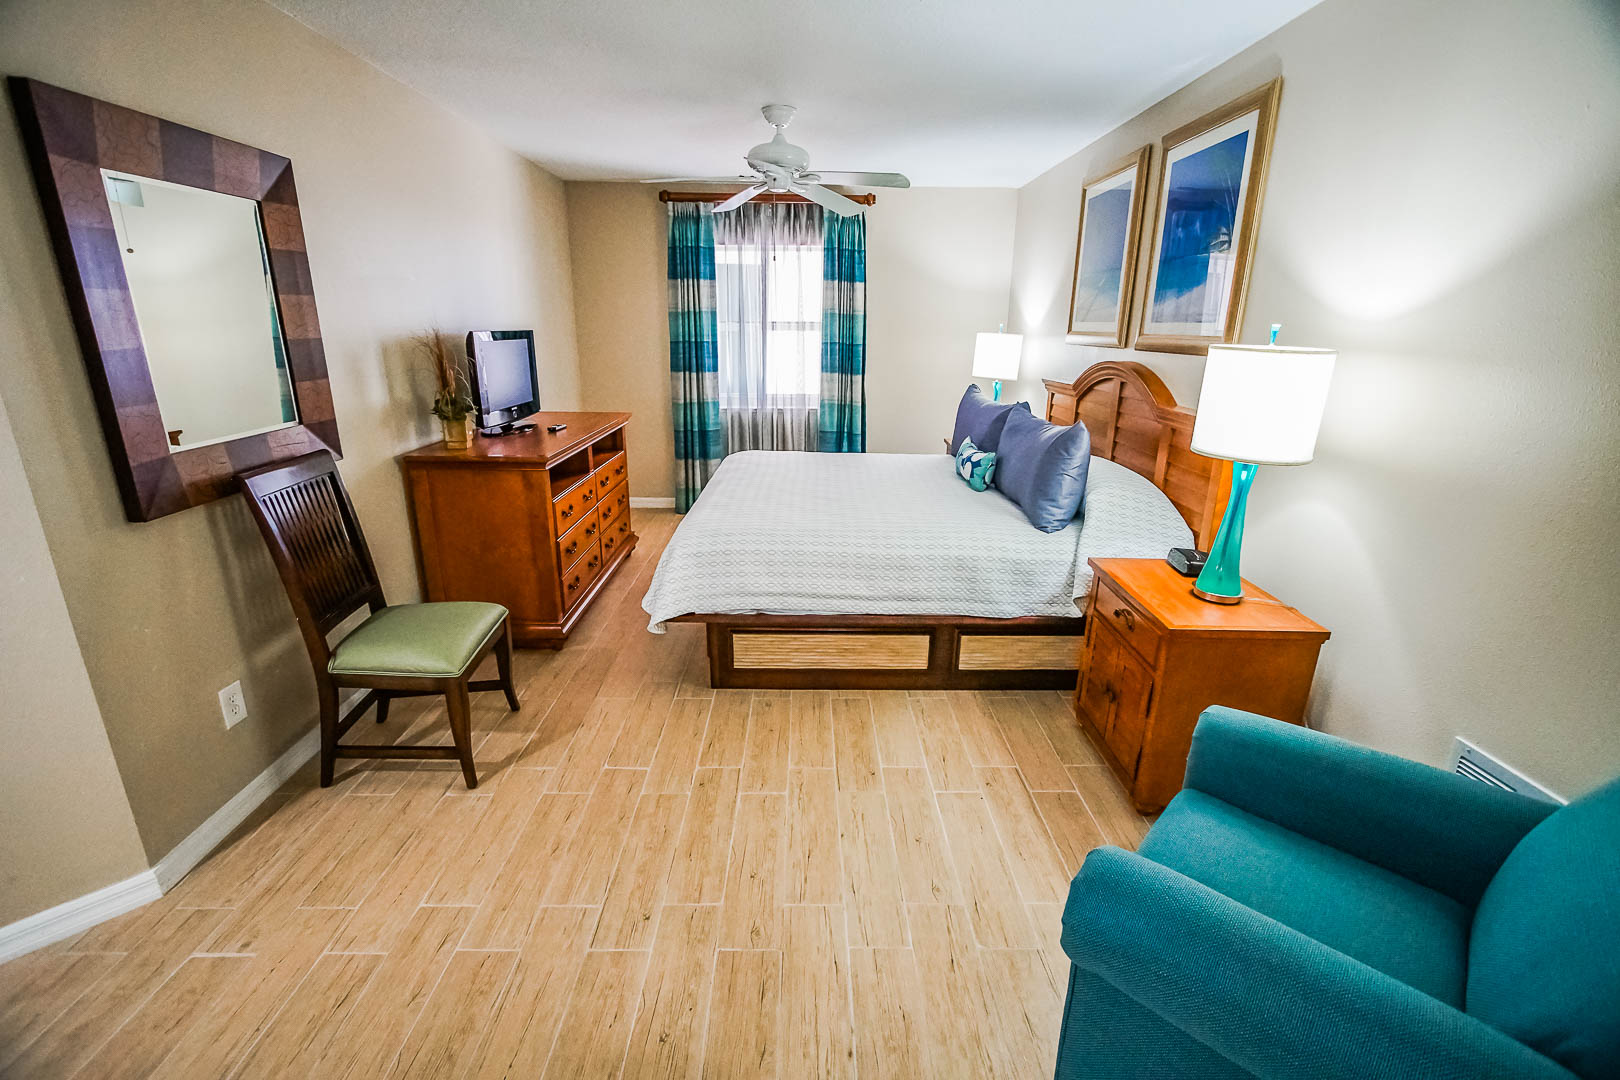 A pleasant 1 bedroom unit at VRI's The Resort on Cocoa Beach in Florida.